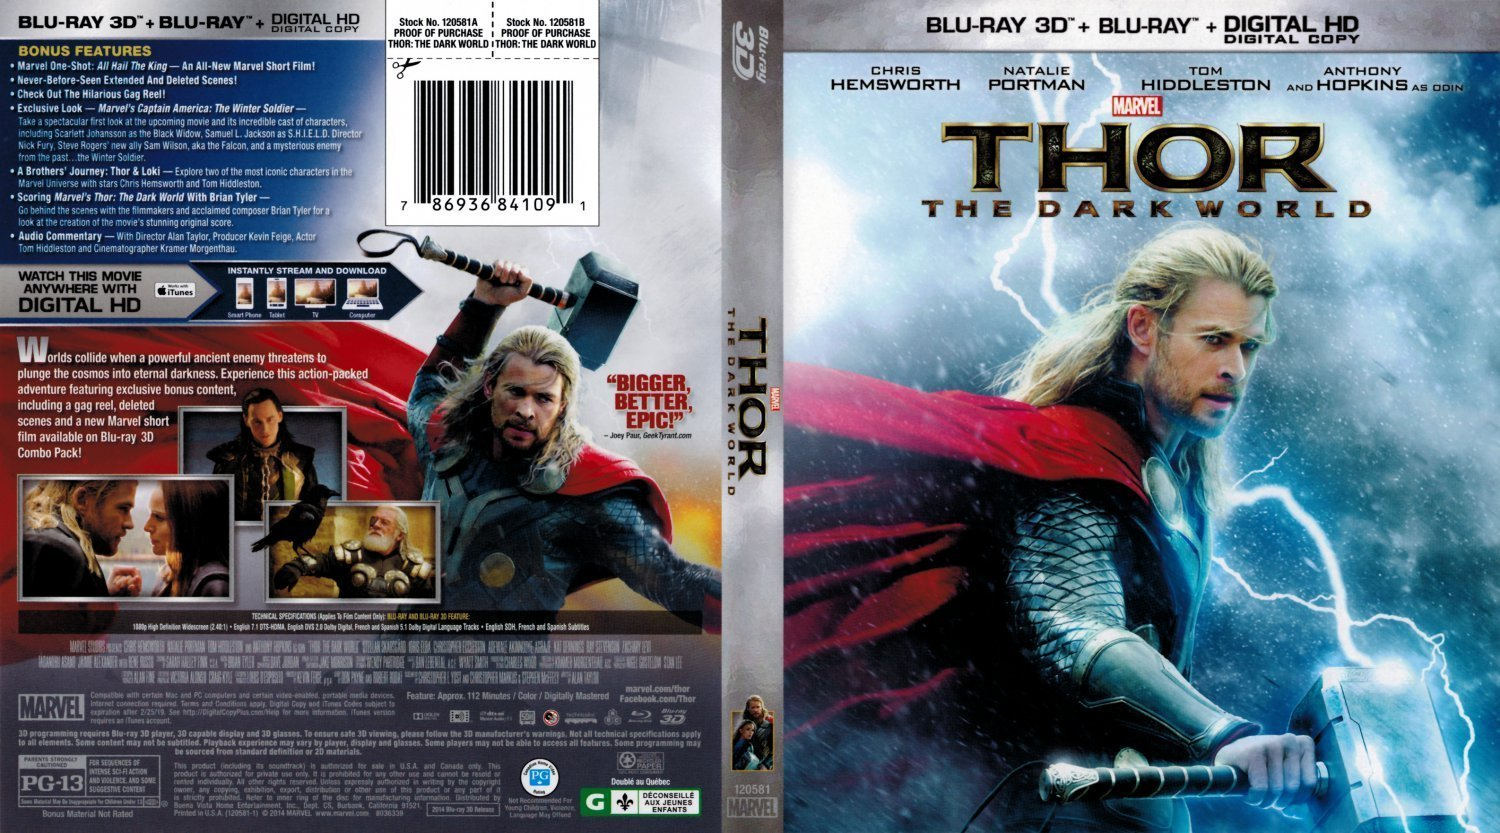 Thor The Dark World 3D Scanned Bluray | Dvd Covers and Labels